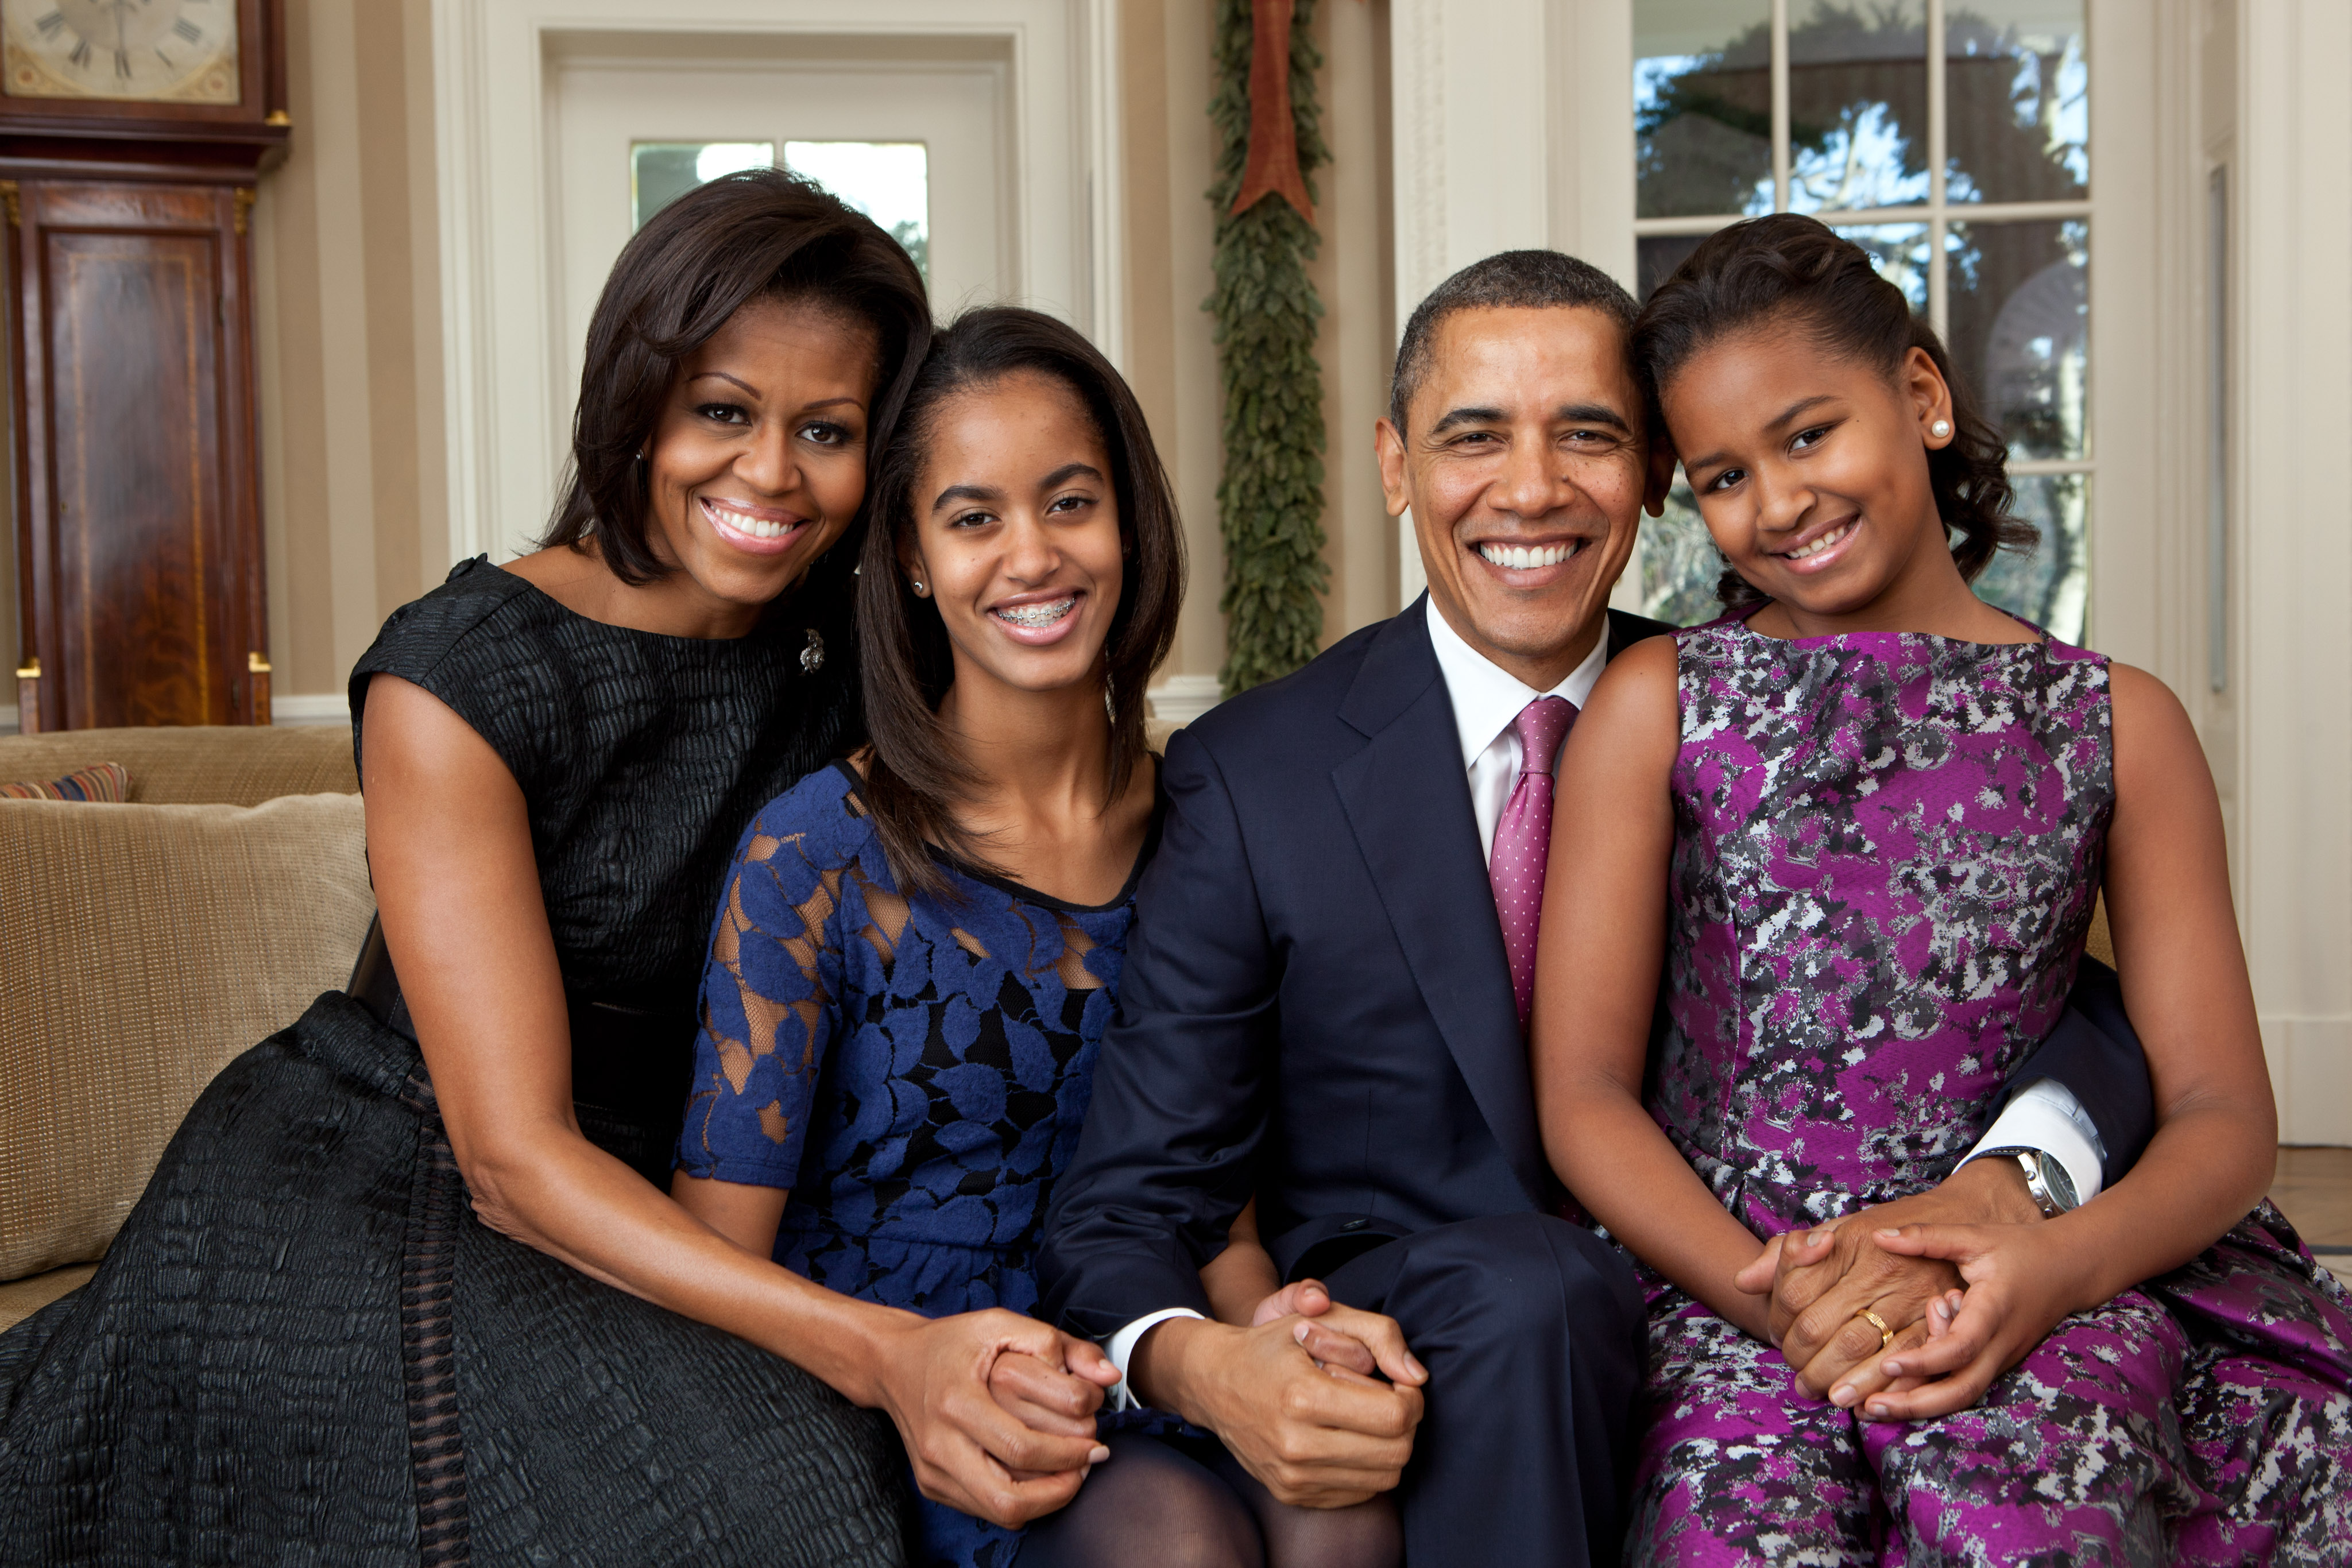 Description Barack Obama Family Portrait 2011